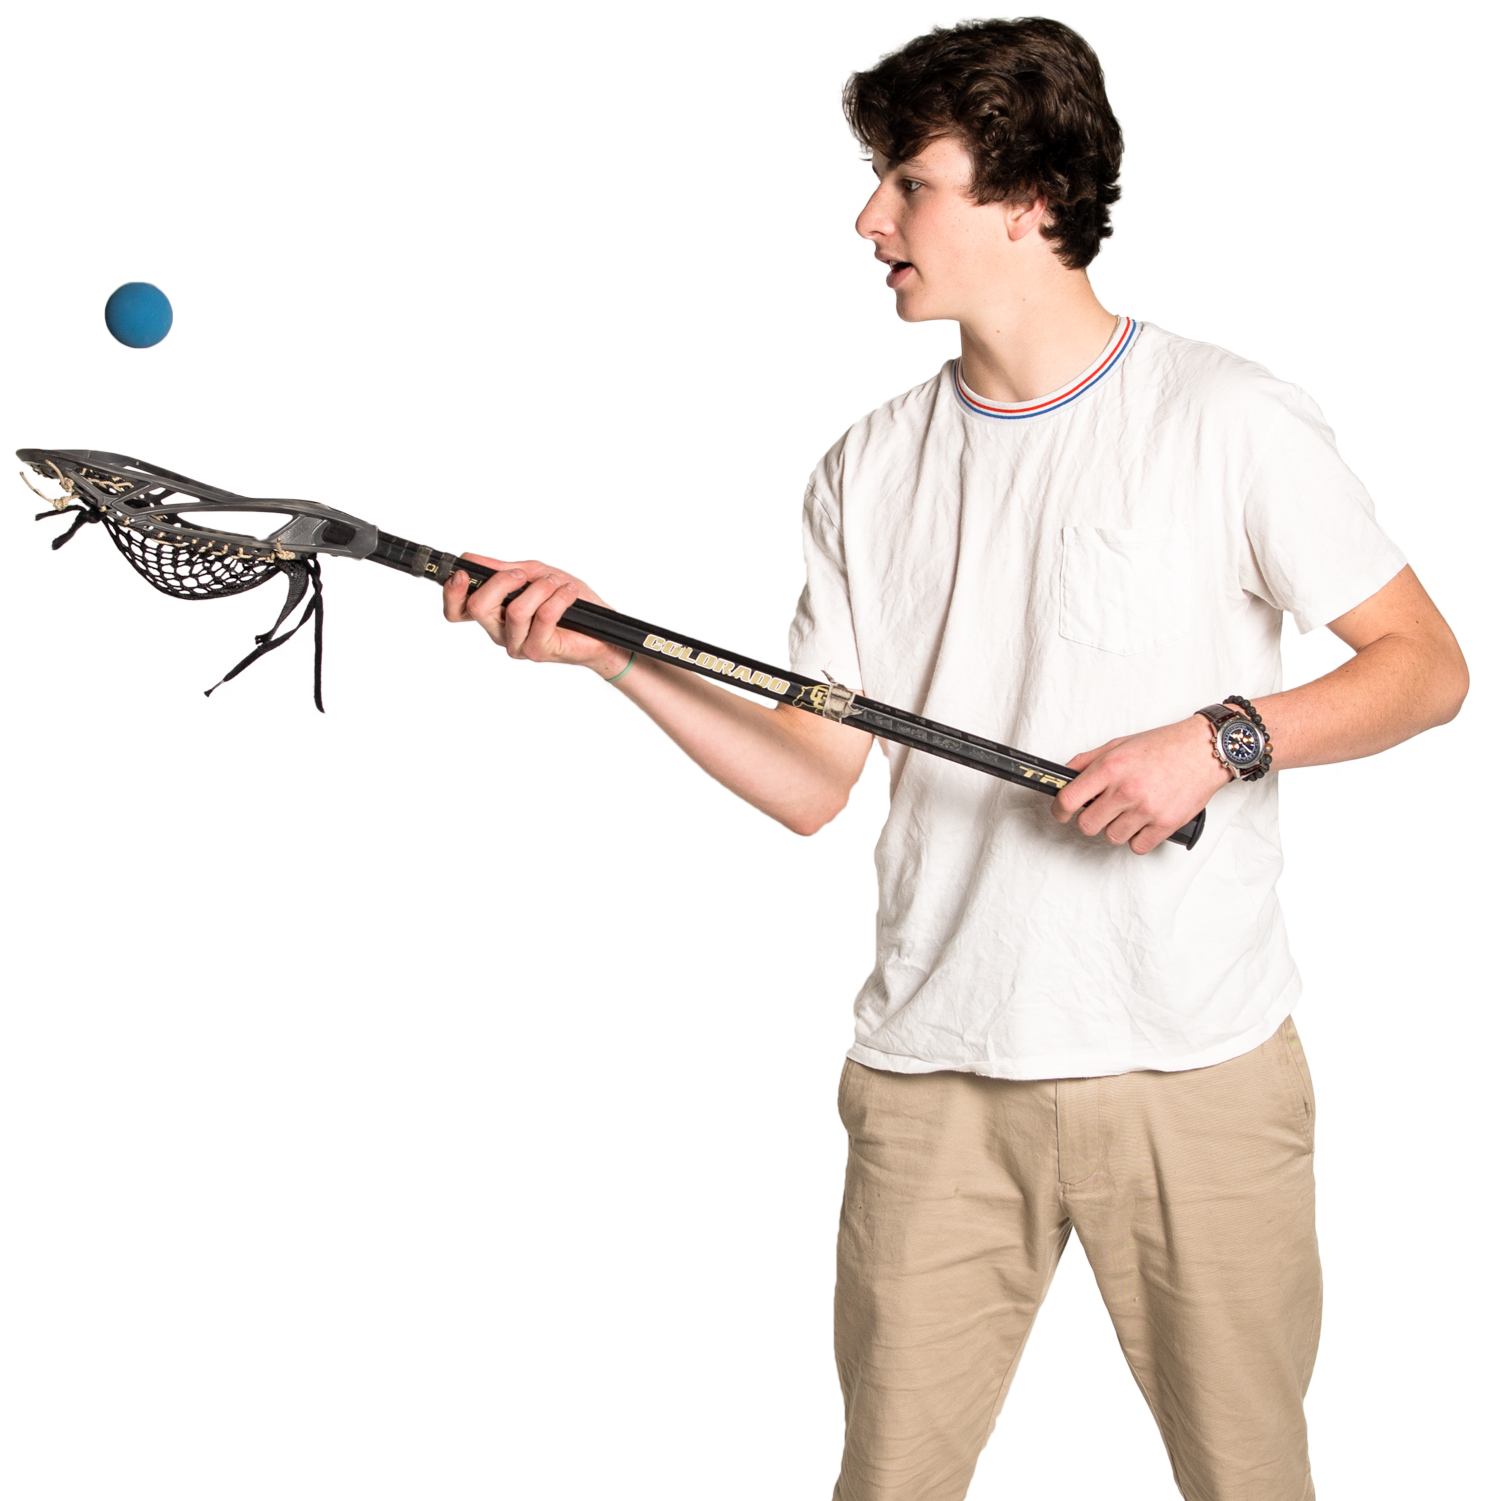 Colin, high school student with a lacrosse stick